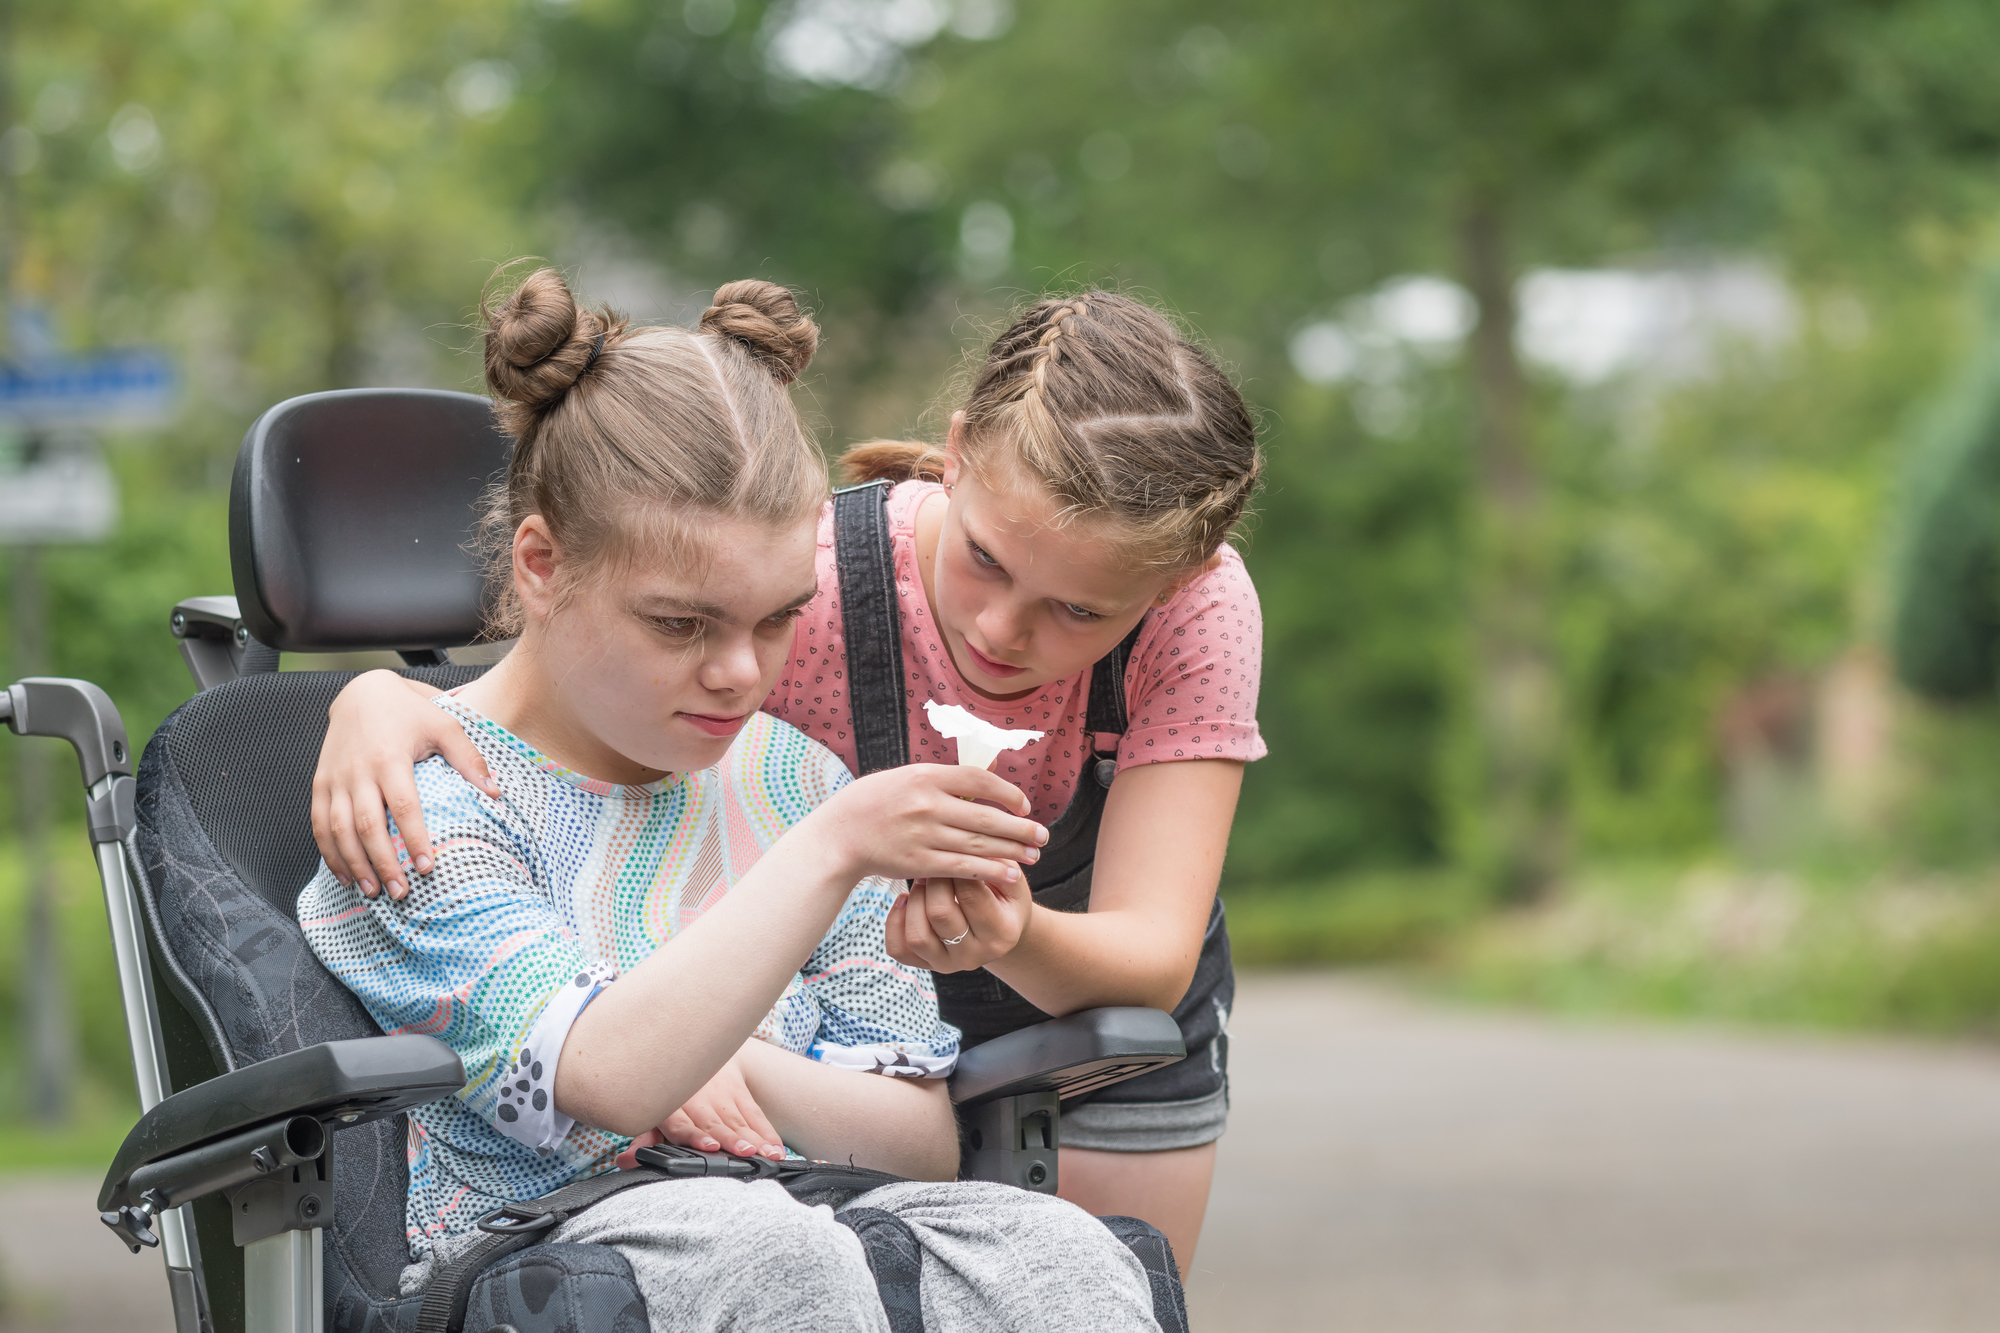 Two kids - one in a wheelchair